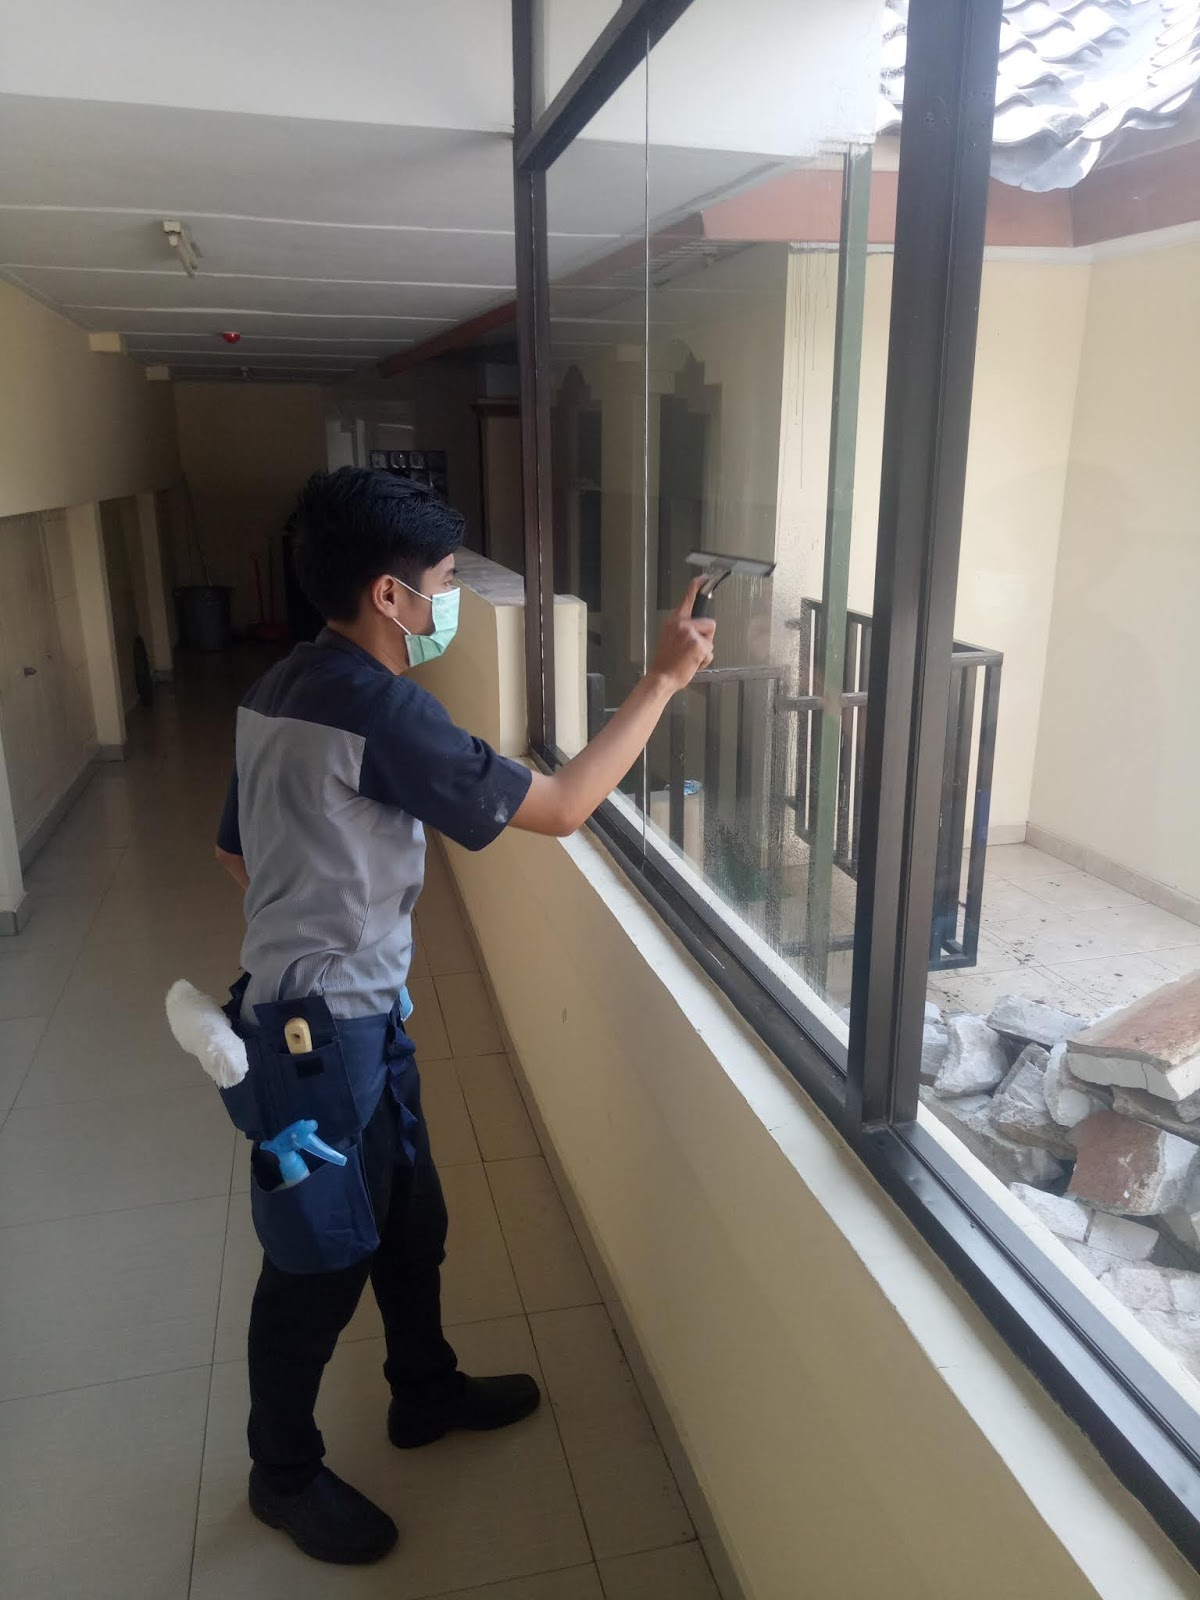 Sop Cleaning Service Rumah Sakit : cleaning, service, rumah, sakit, Cleaning, Service, Rumah, Sakit